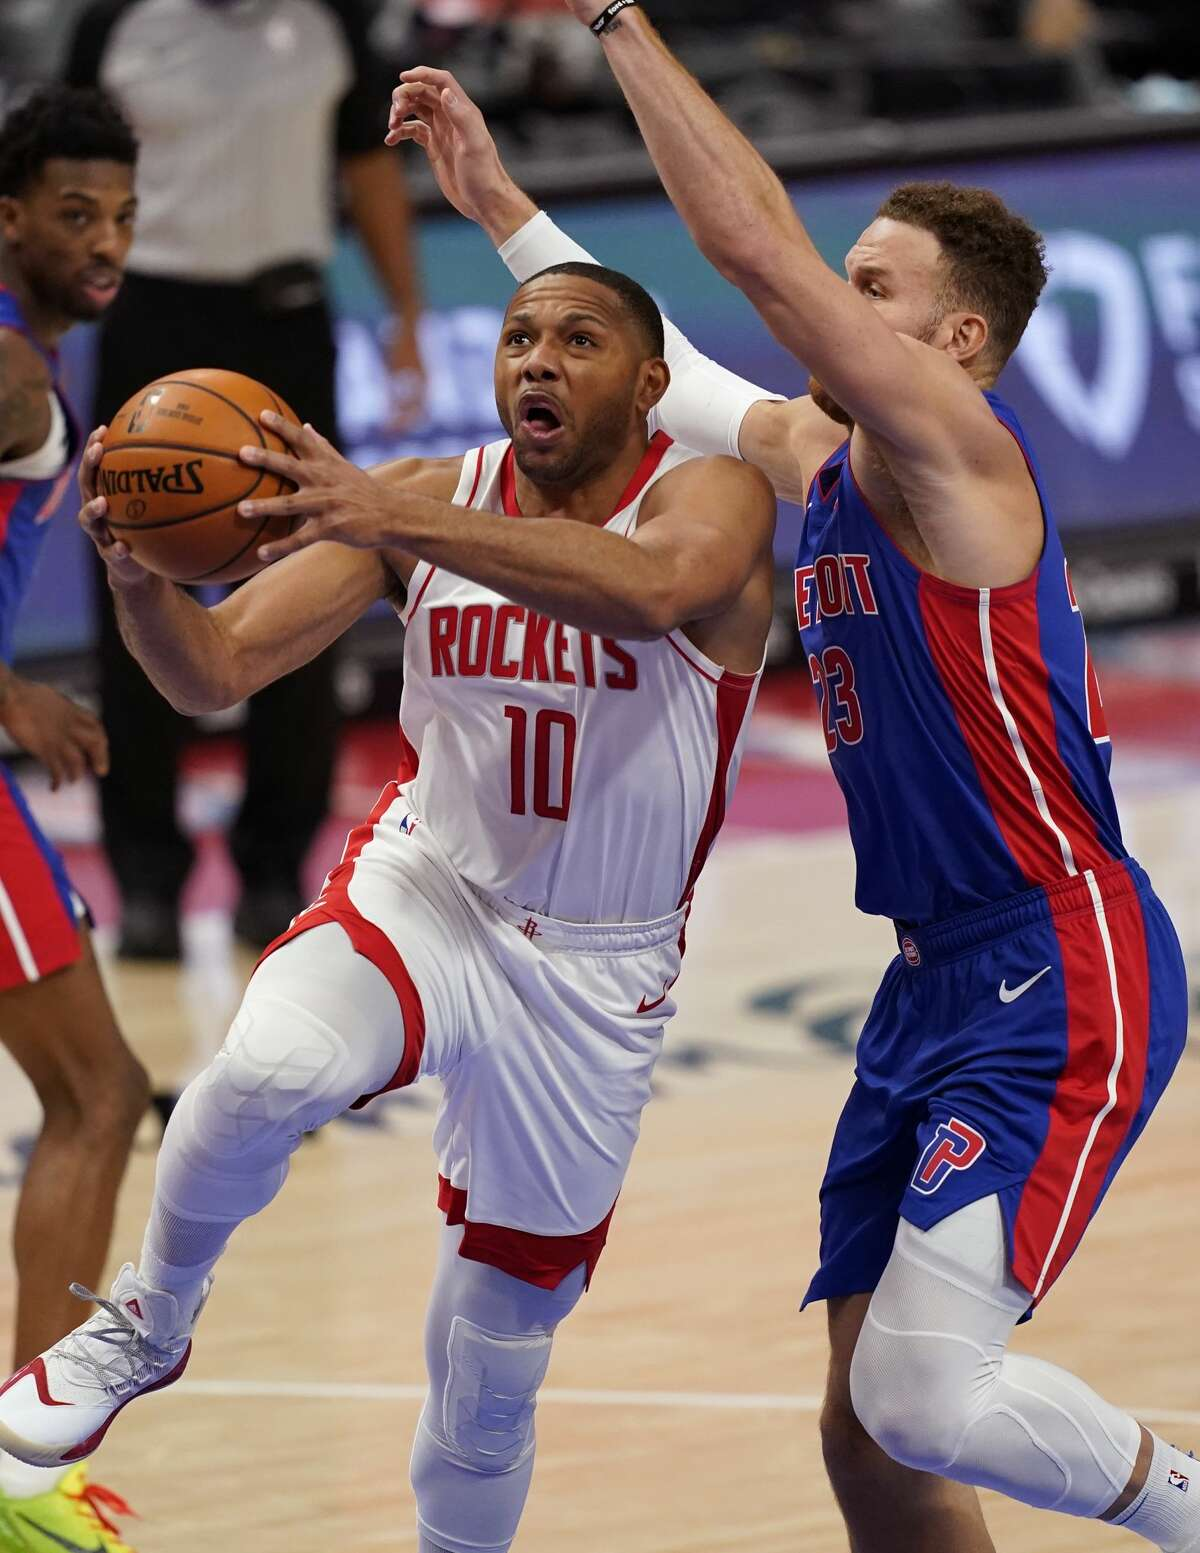 Houston Rockets guard Eric Gordon (10) attempts a layup as Detroit Pistons forward Blake Griffin defends during the second half of an NBA basketball game, Friday, Jan. 22, 2021, in Detroit. (AP Photo/Carlos Osorio)